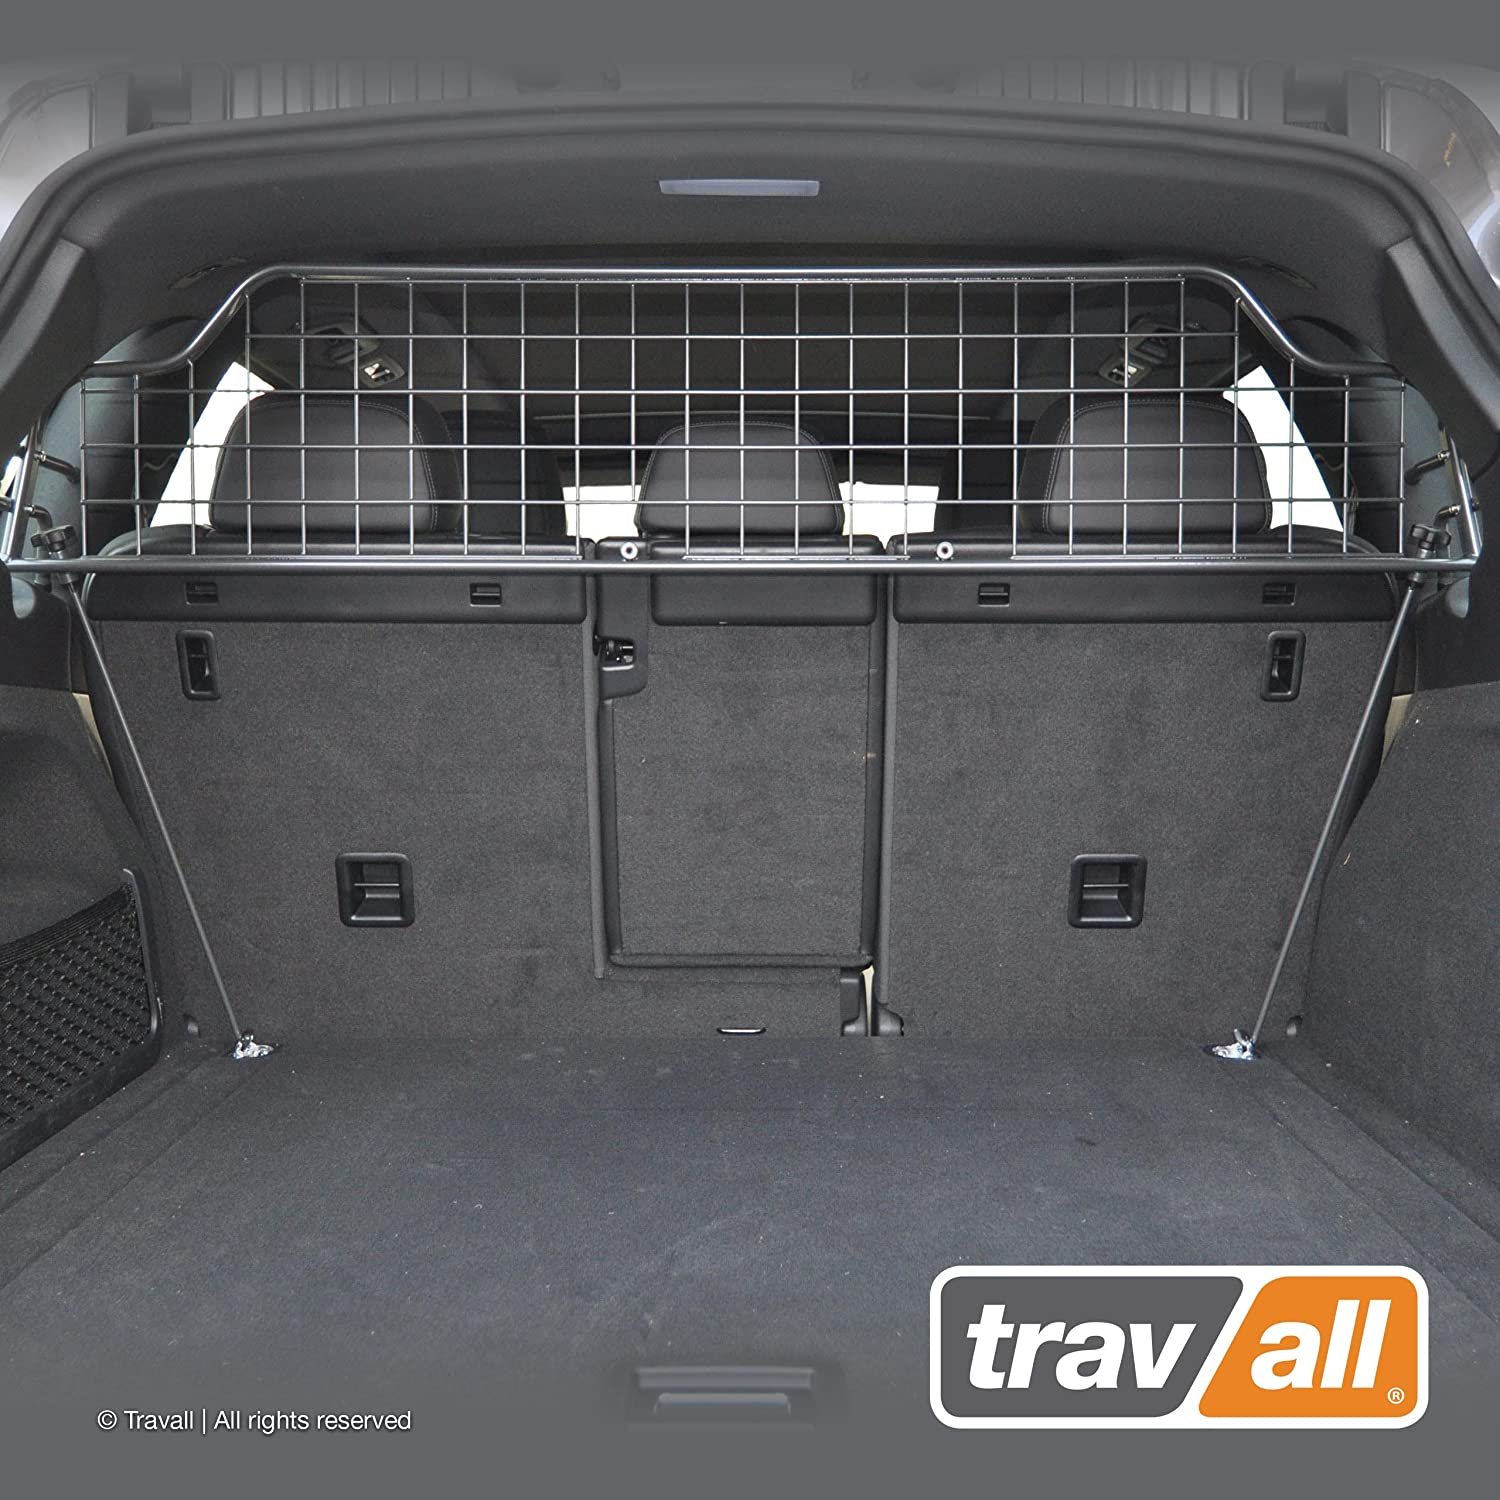 Travall Guard Compatible with Porsche Cayenne 2010-2017 TDG1326 – Removable Steel Pet Barrier